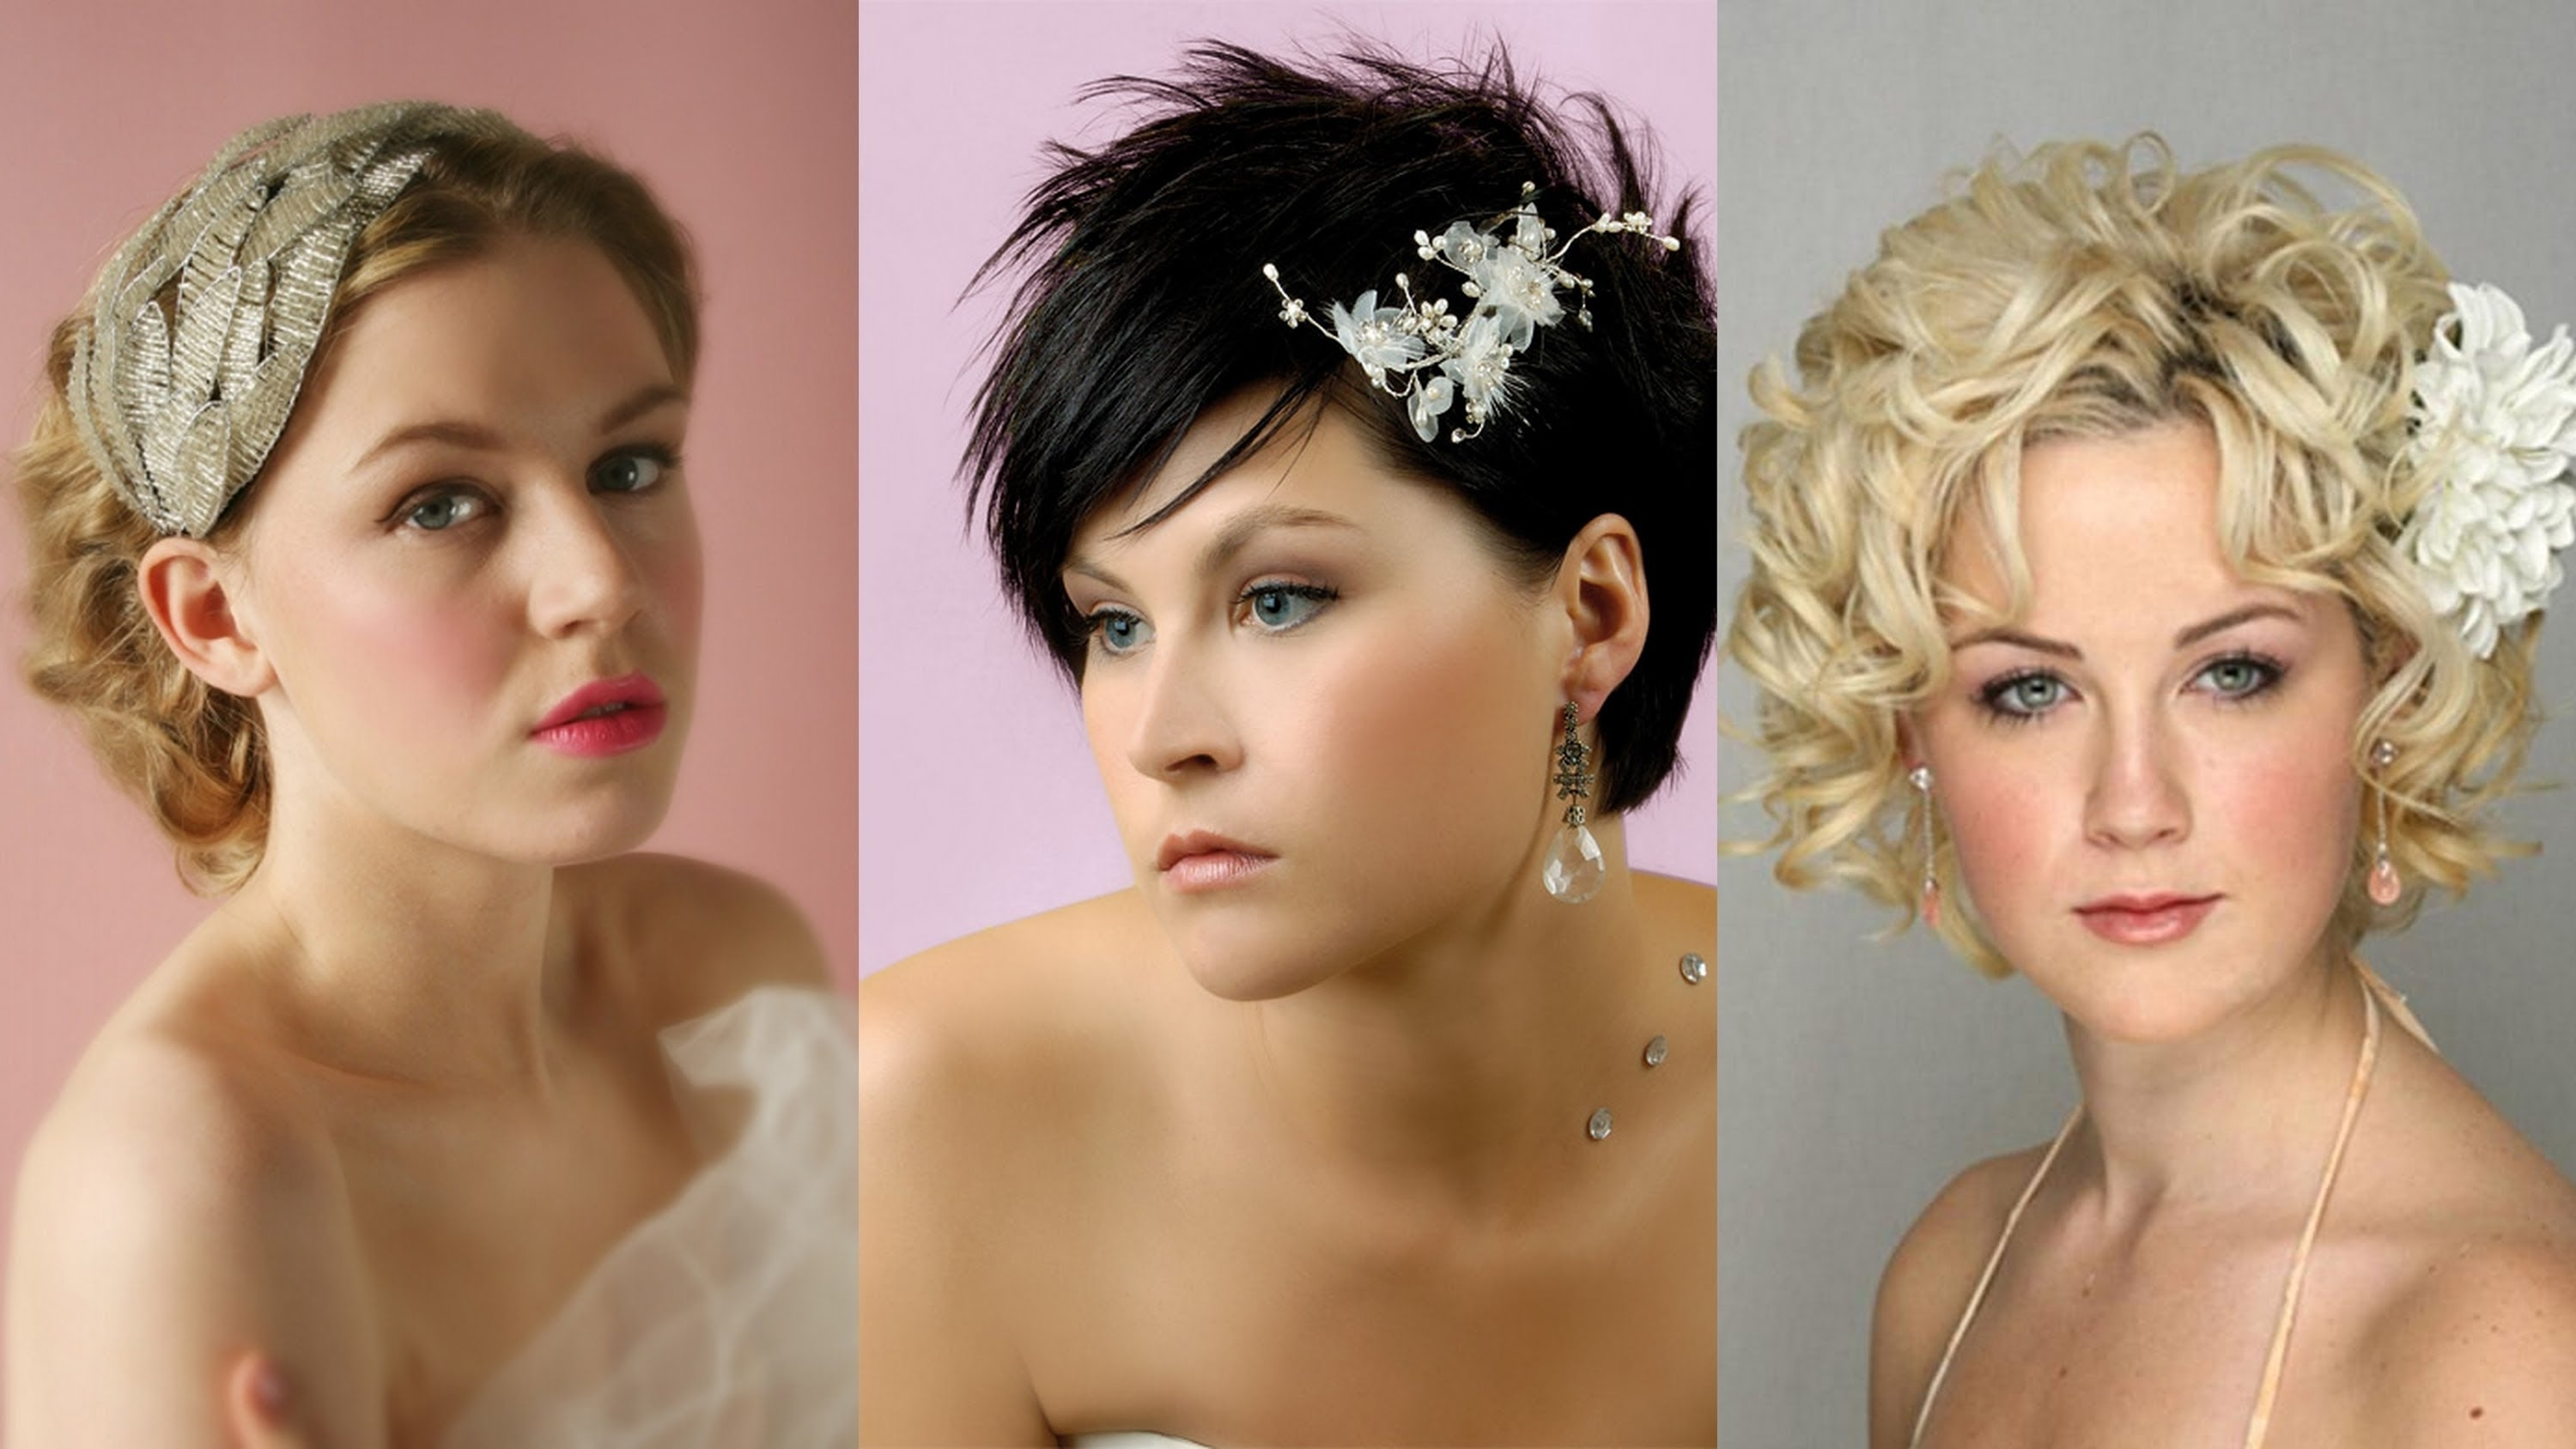 35 Lovely Wedding Hairstyles For Short Hair – Youtube For Popular Easy Bridal Hairstyles For Short Hair (View 3 of 15)